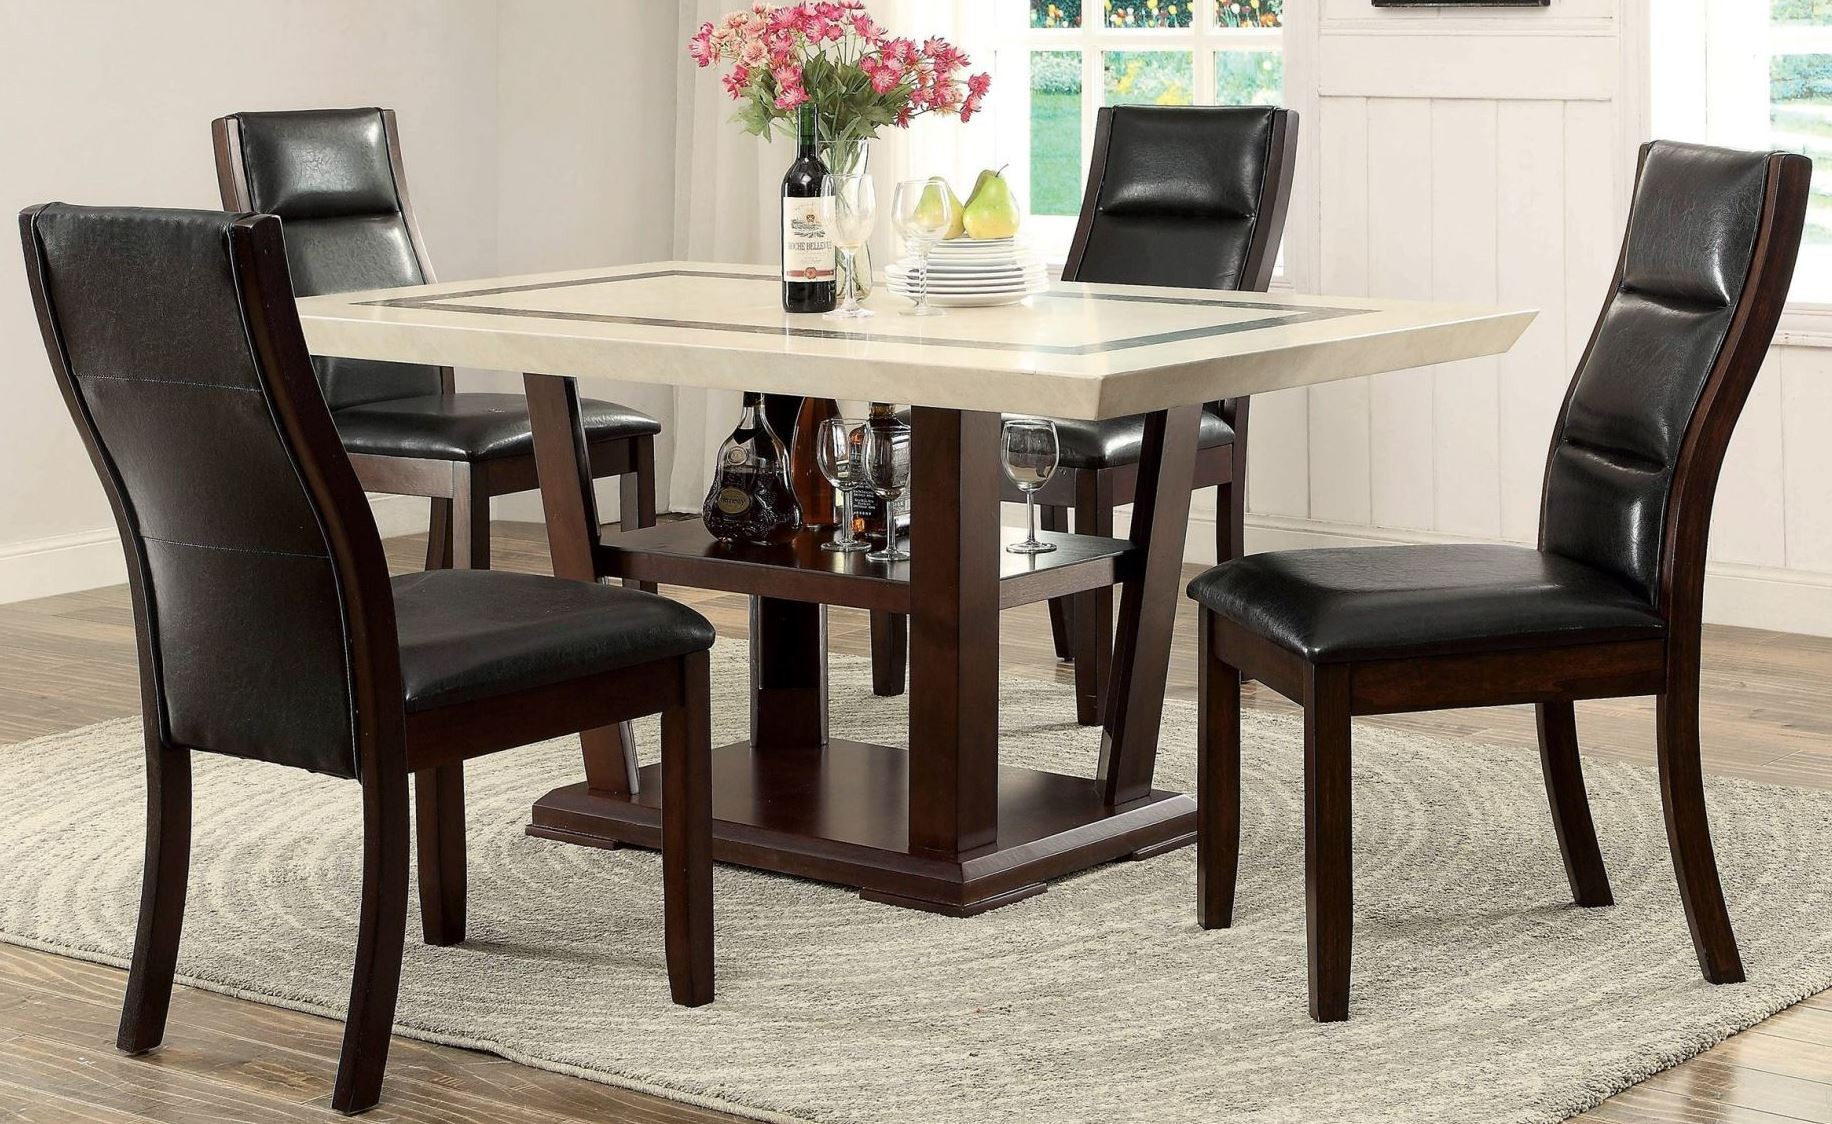 lacombe cappuccino rectangular dining room set from lavon cappuccino counter height dining room set from